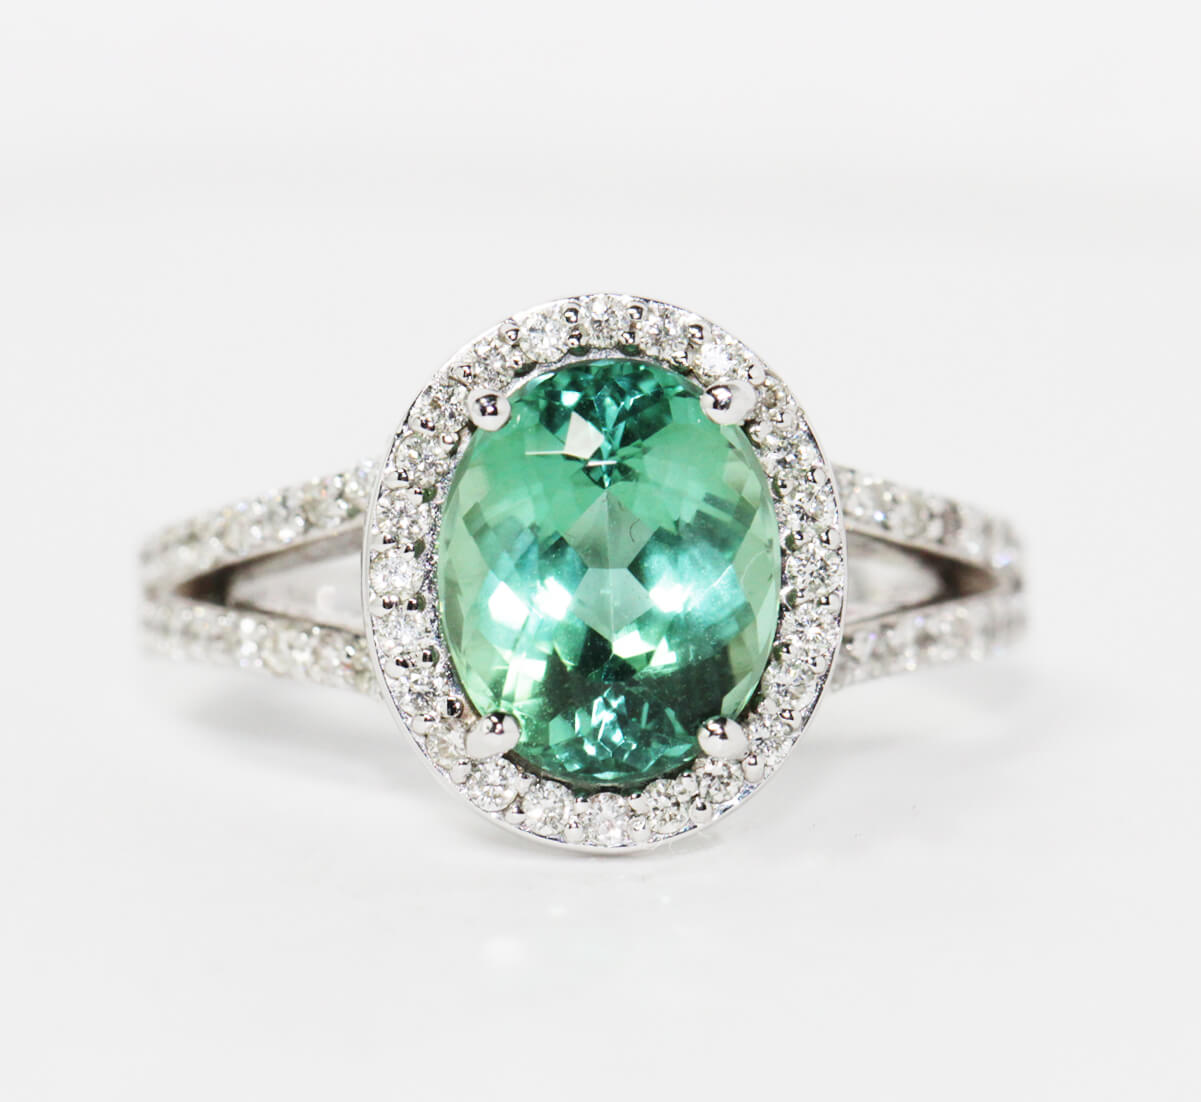 Estate green torumaline ring